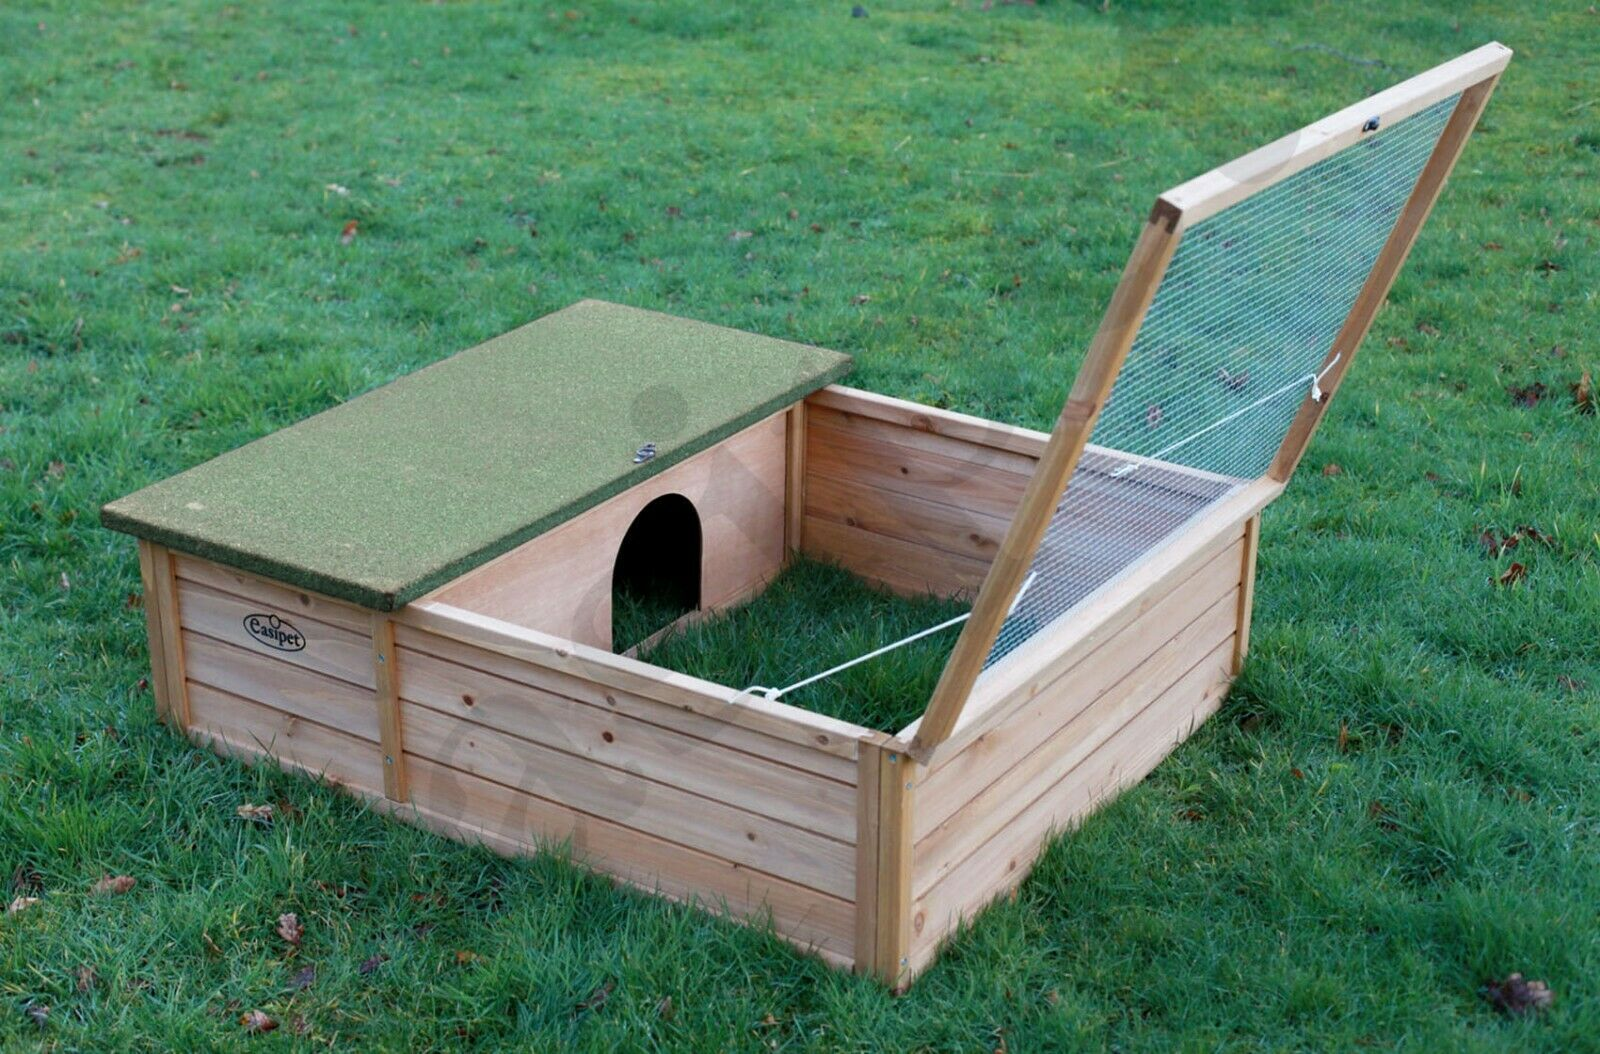 hedgehog tortoise small pet wooden house hide shelter with. Black Bedroom Furniture Sets. Home Design Ideas